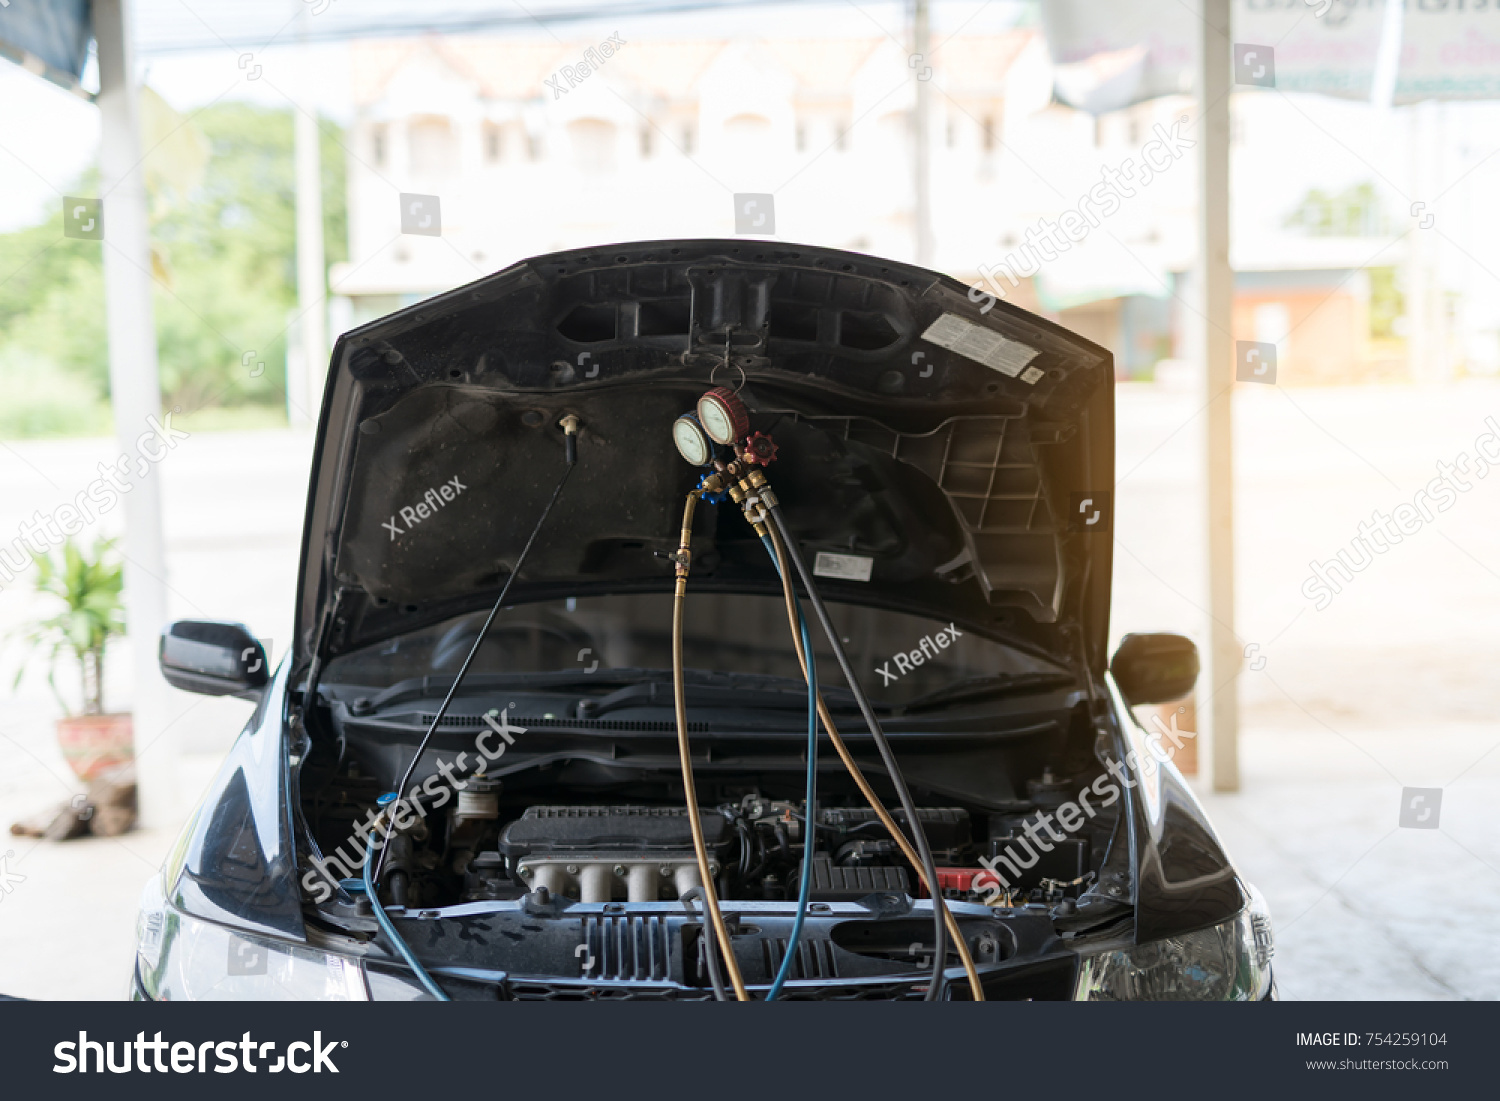 Car Air Conditioner Check Service Leak Stock Photo 754259104 ...